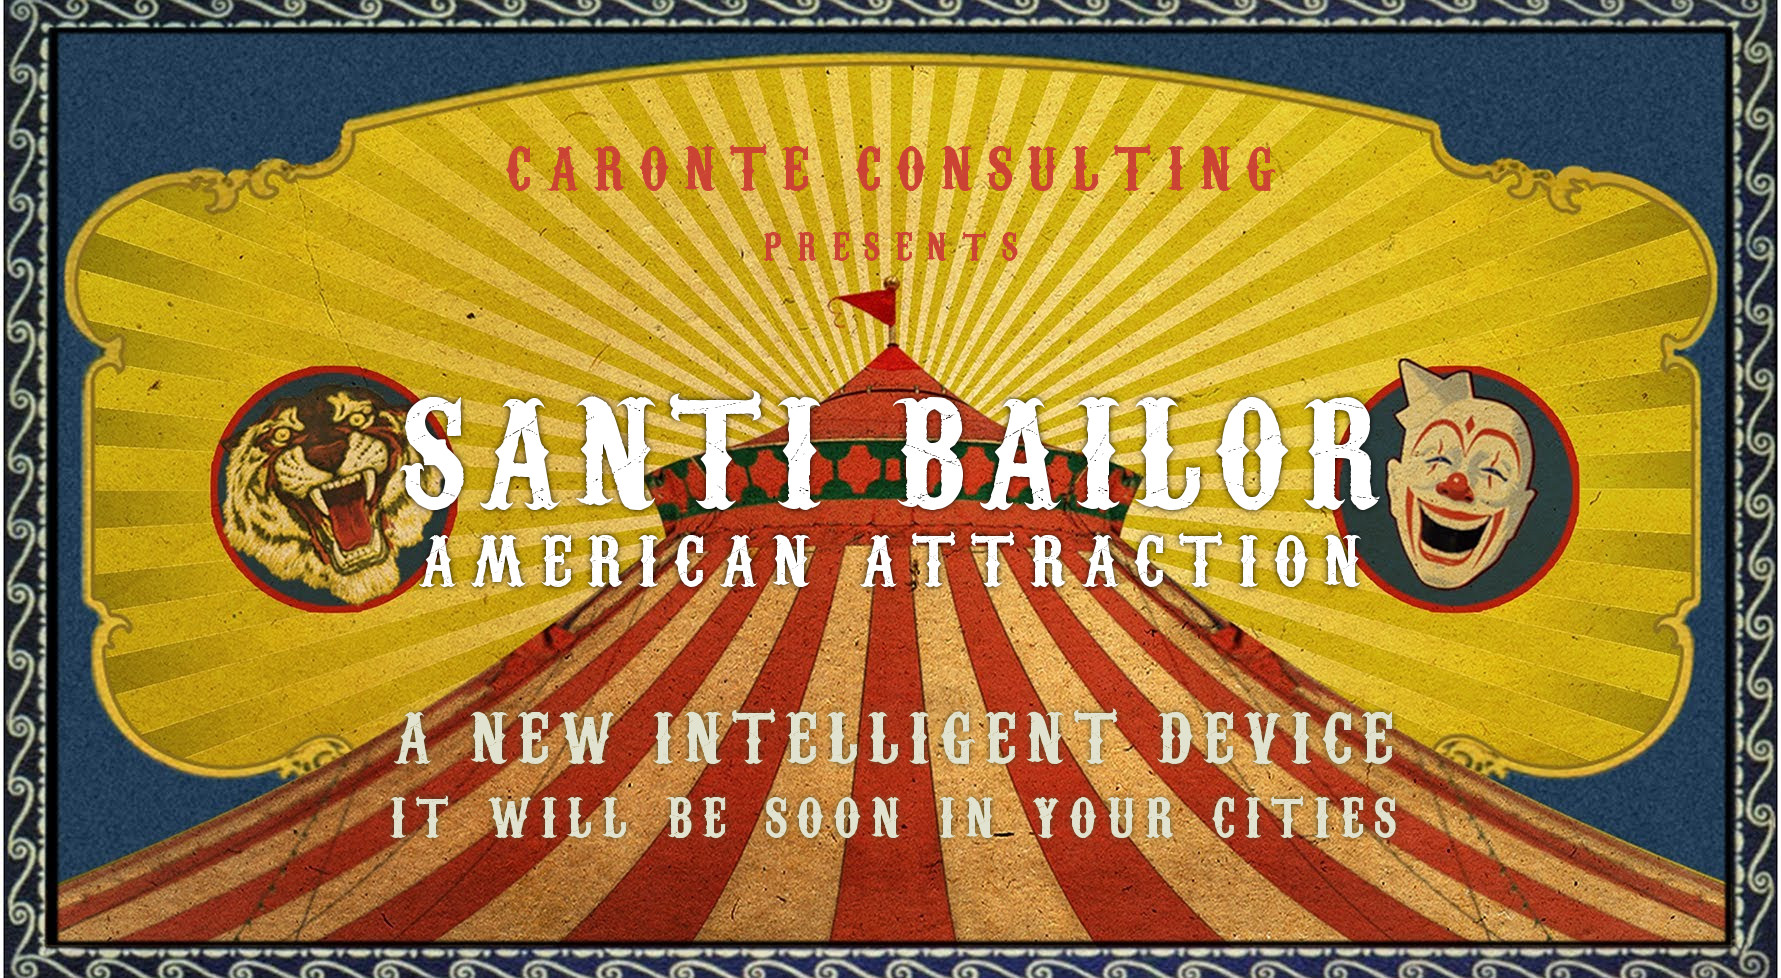 Santi Bailor American Attraction